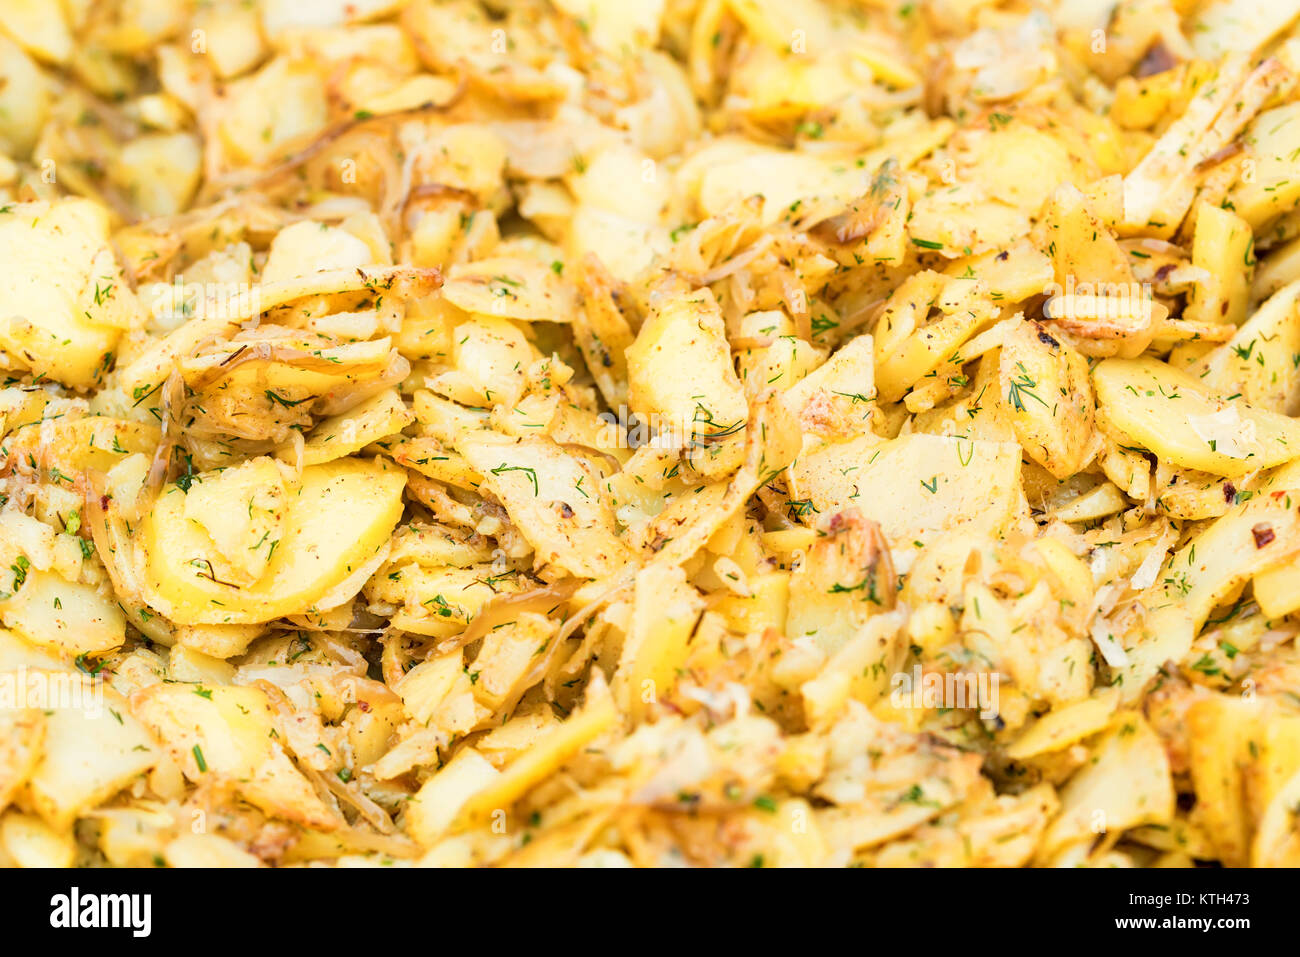 Pan full of potato wedges - Stock Image